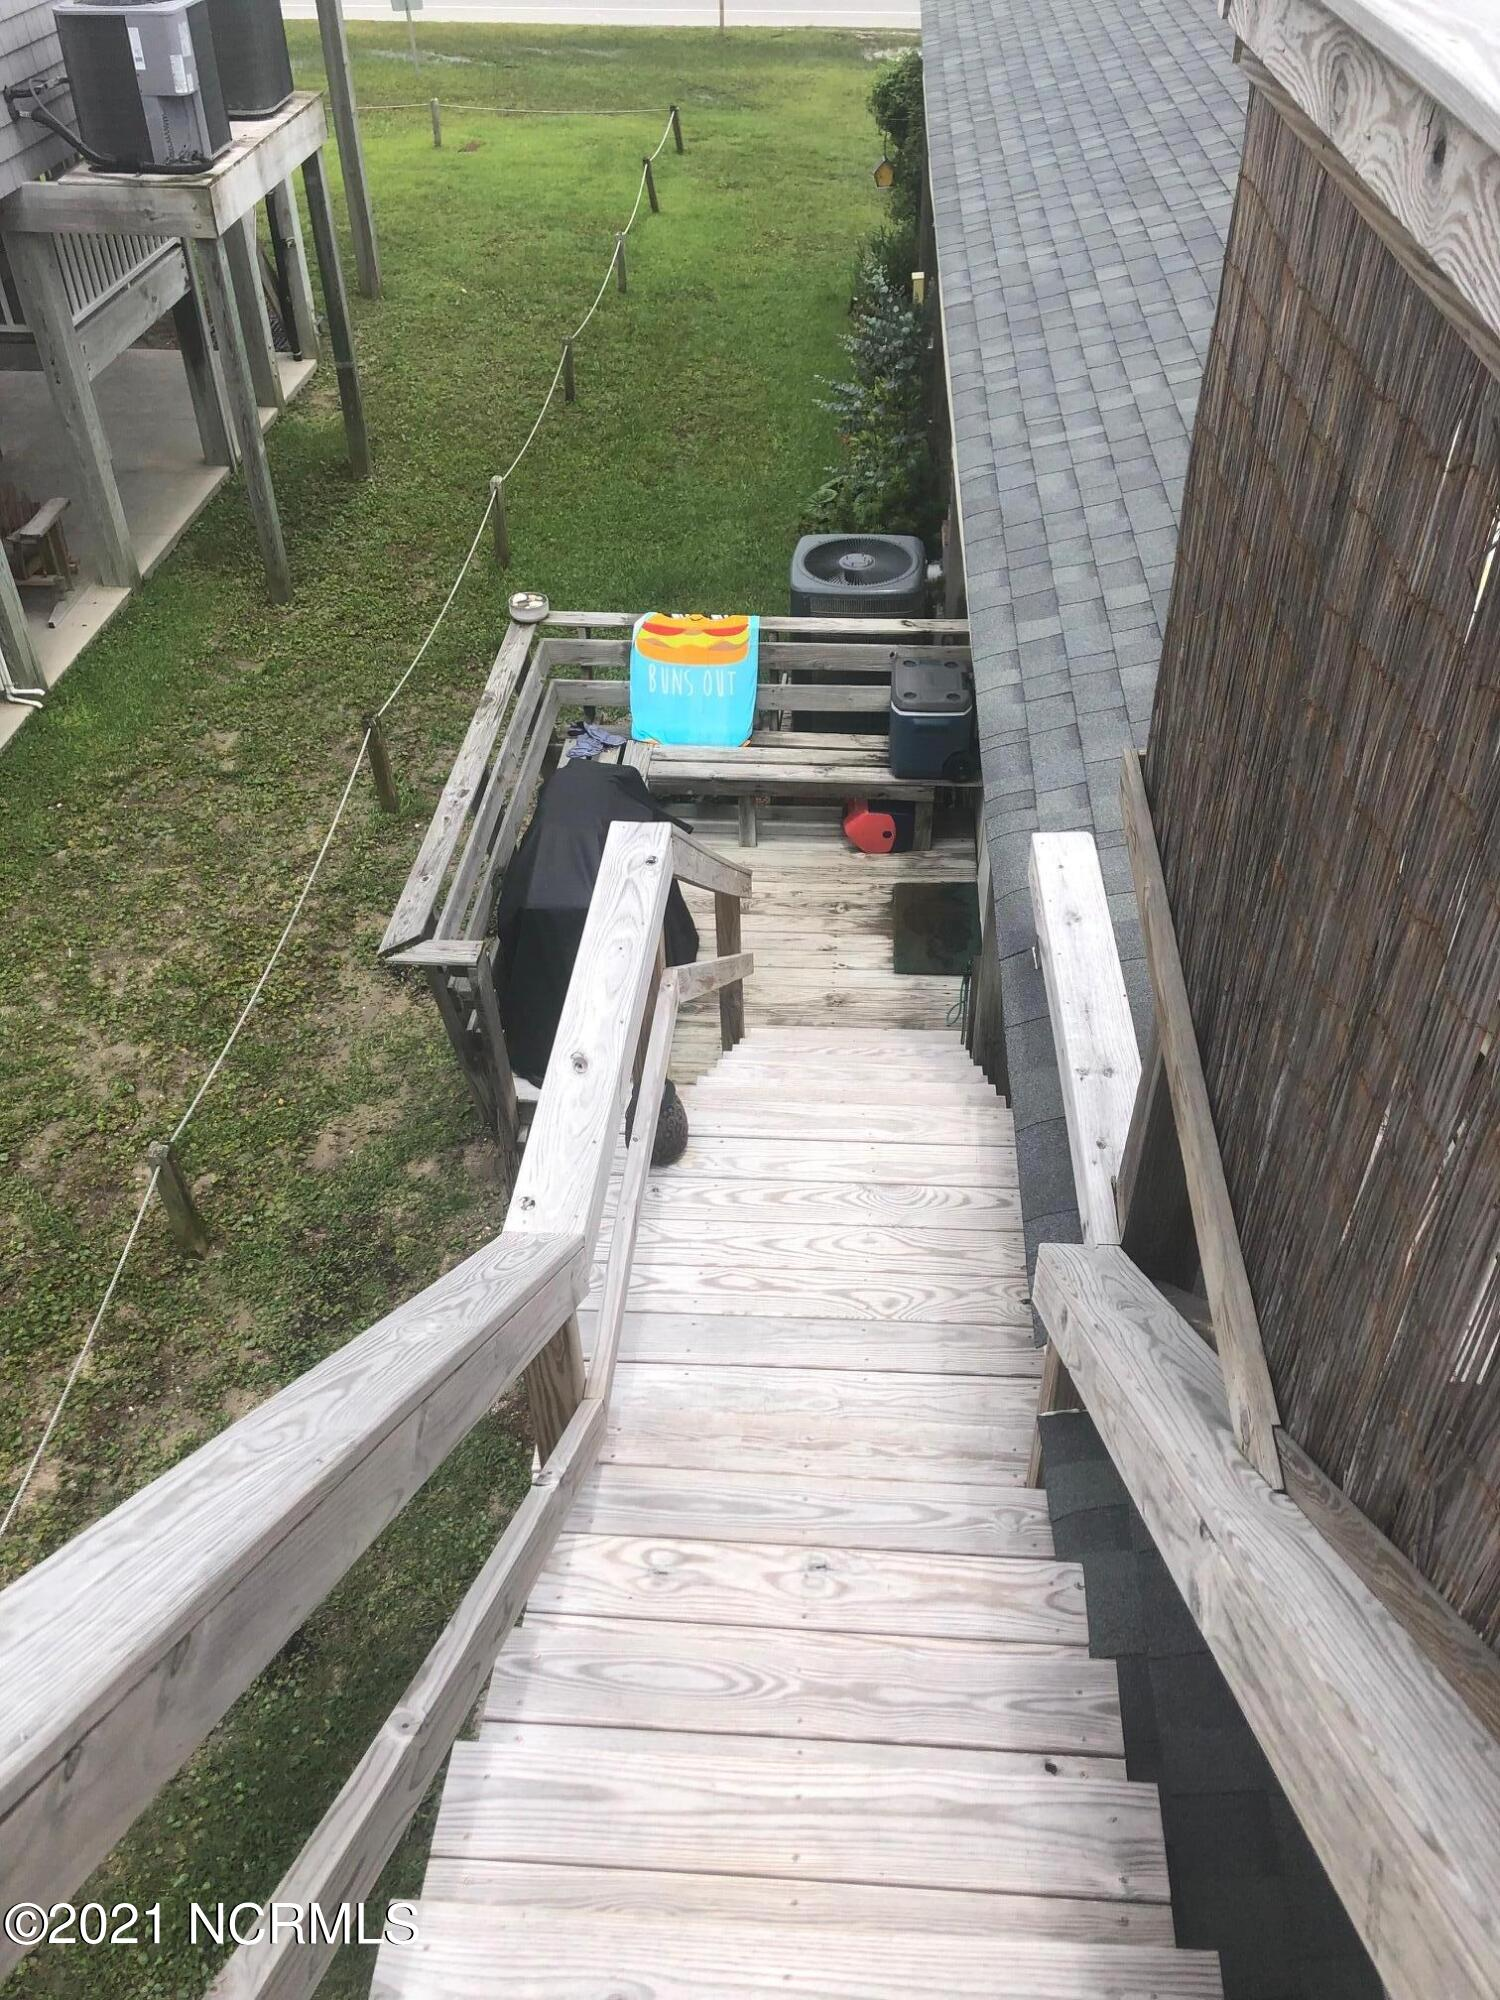 3184 Island Drive, North Topsail Beach, North Carolina 28460, 2 Bedrooms Bedrooms, 5 Rooms Rooms,2 BathroomsBathrooms,Manufactured home,For sale,Island,100274935